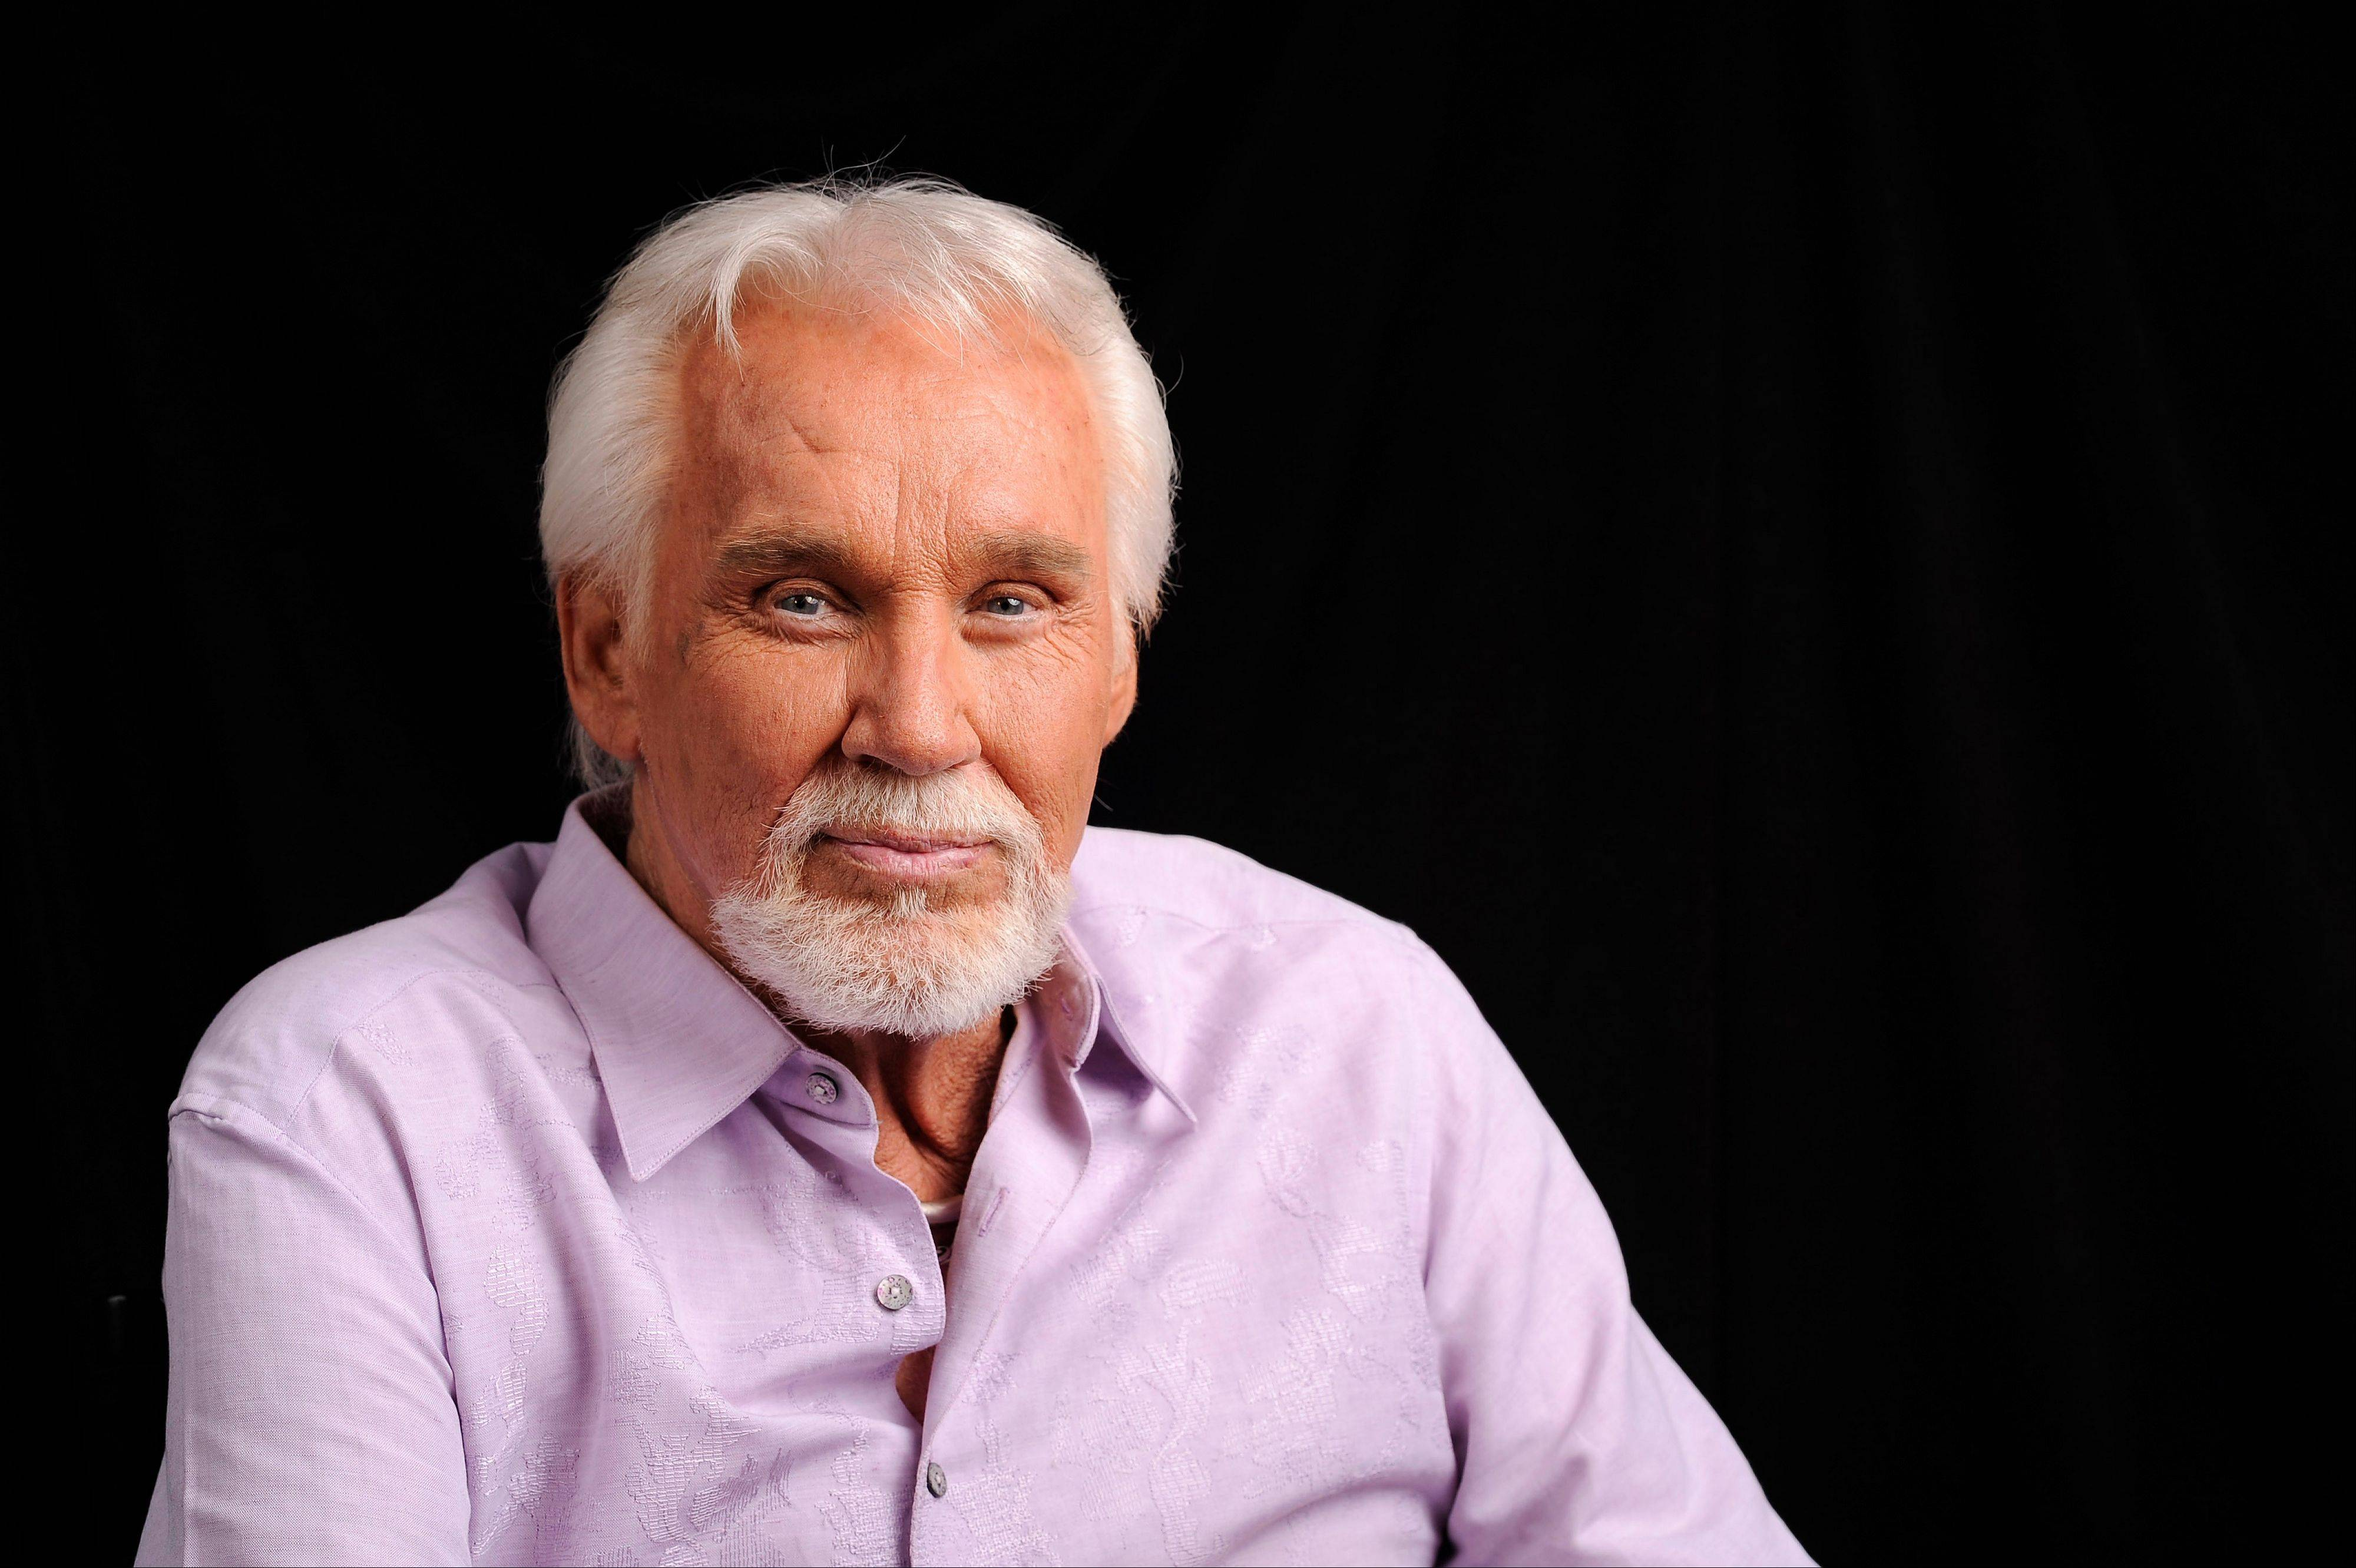 Kenny Rogers� latest album, �You Can�t Make Old Friends,� was released on Oct. 8.